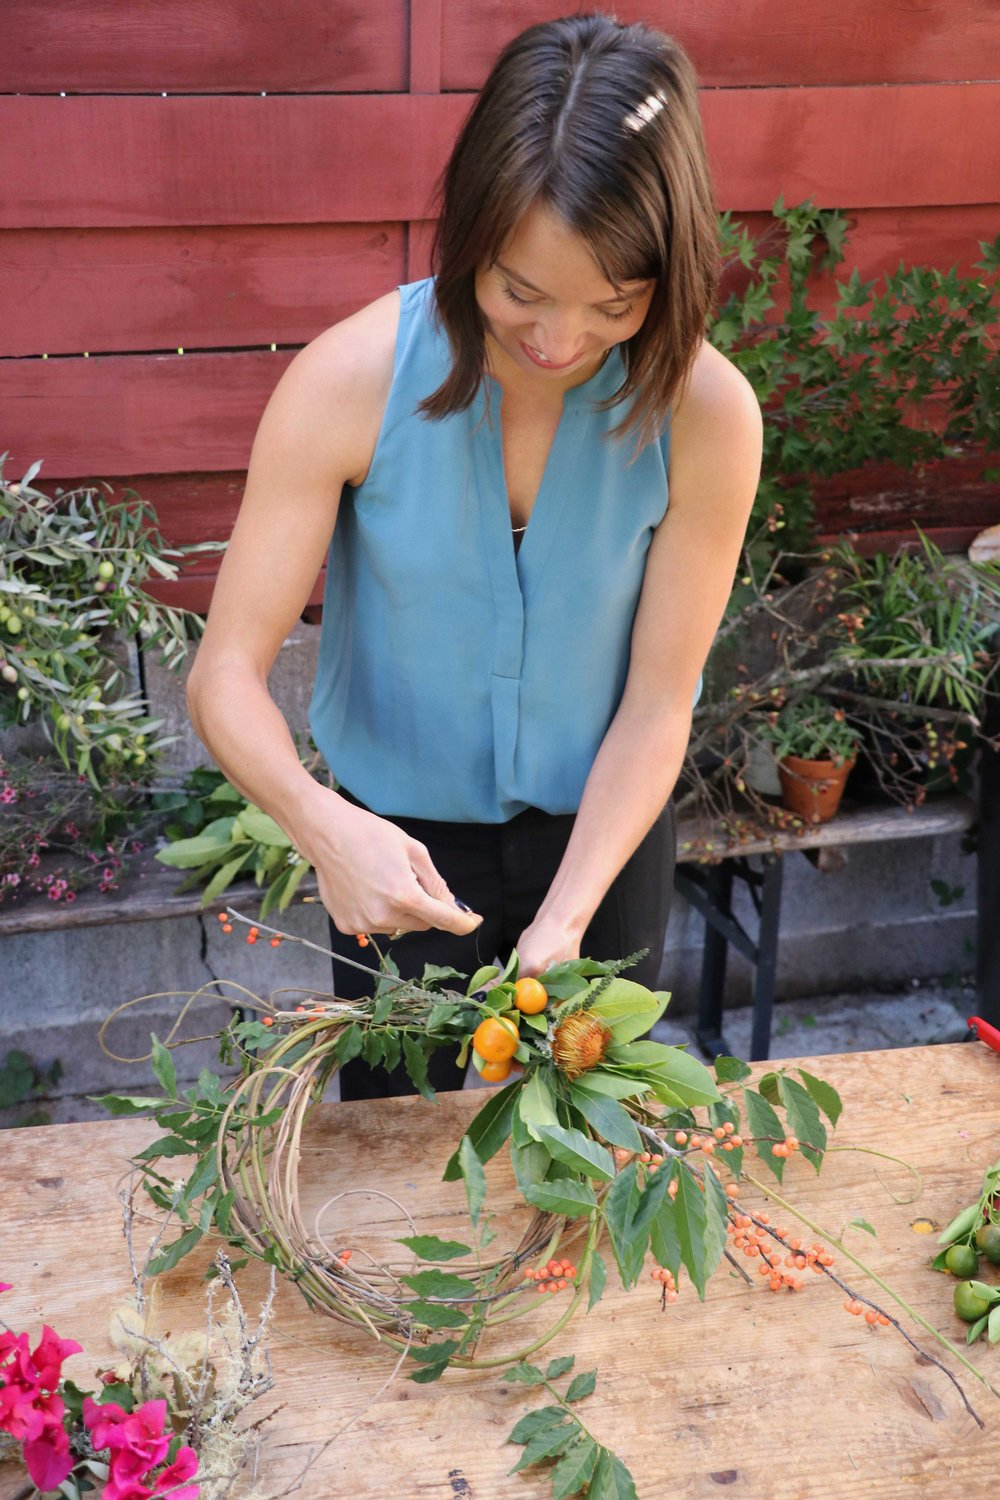 Here I am making the beginning of a fall wreath